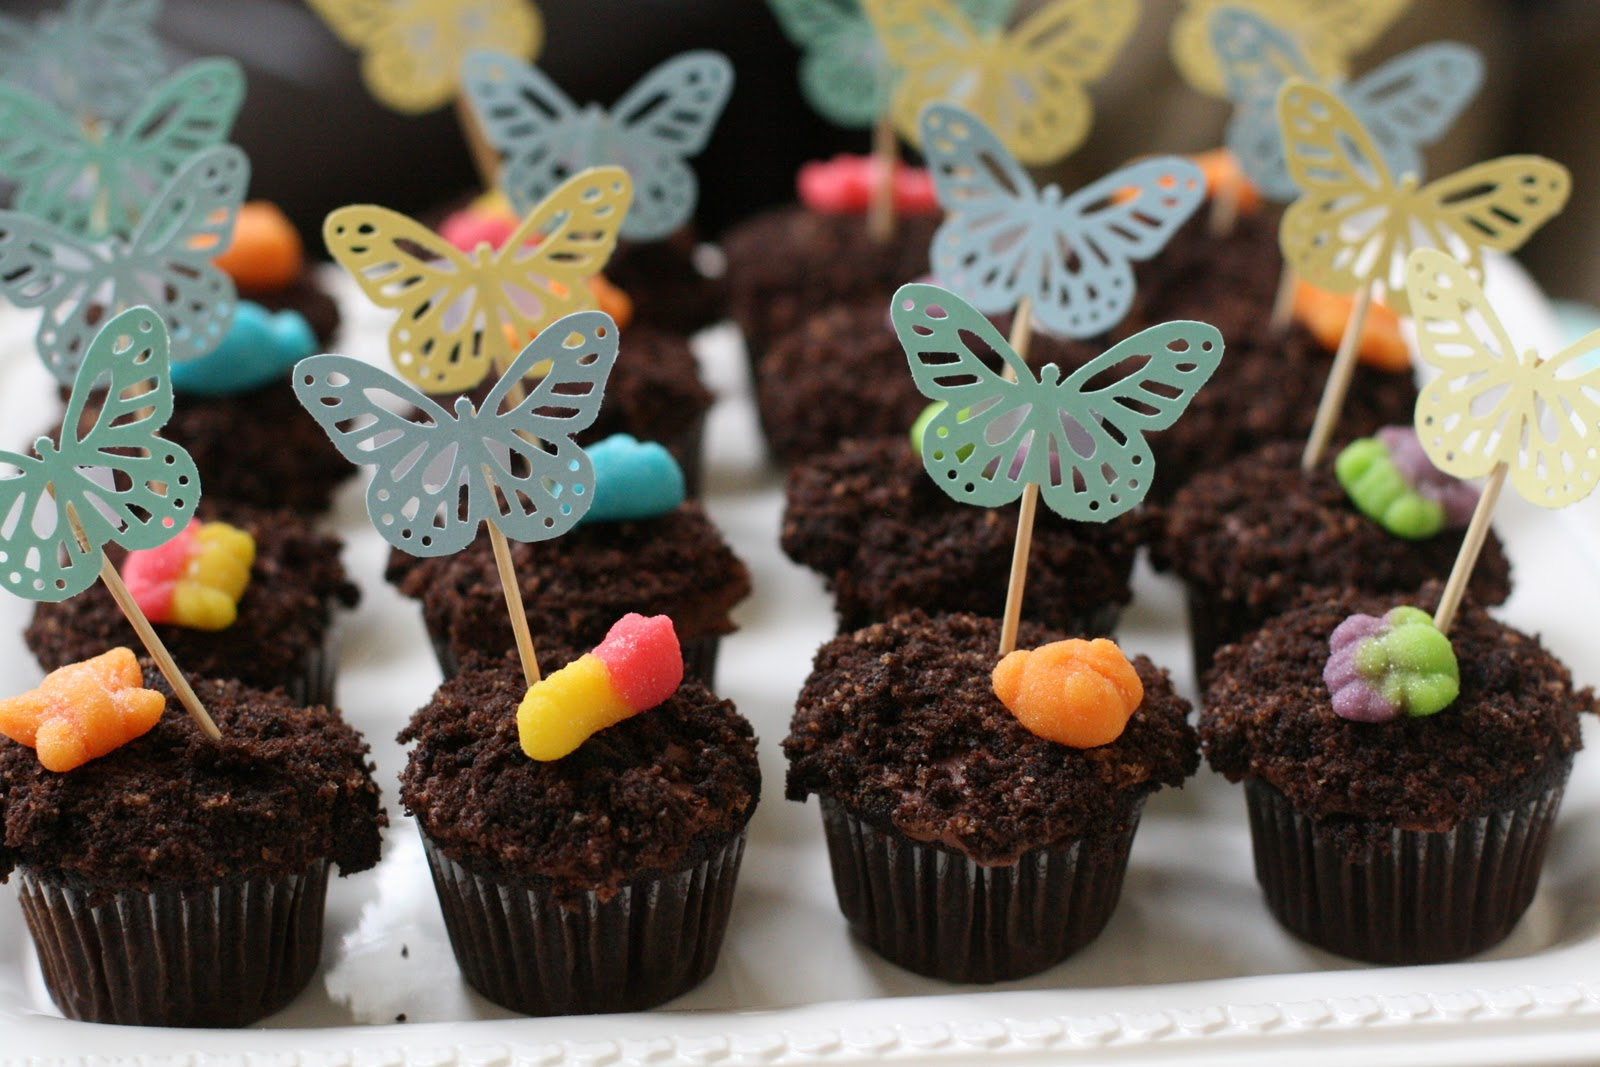 A Bug Birthday Party I Almost Bugged Out Week Of Menus - Bug cupcake decorating ideas